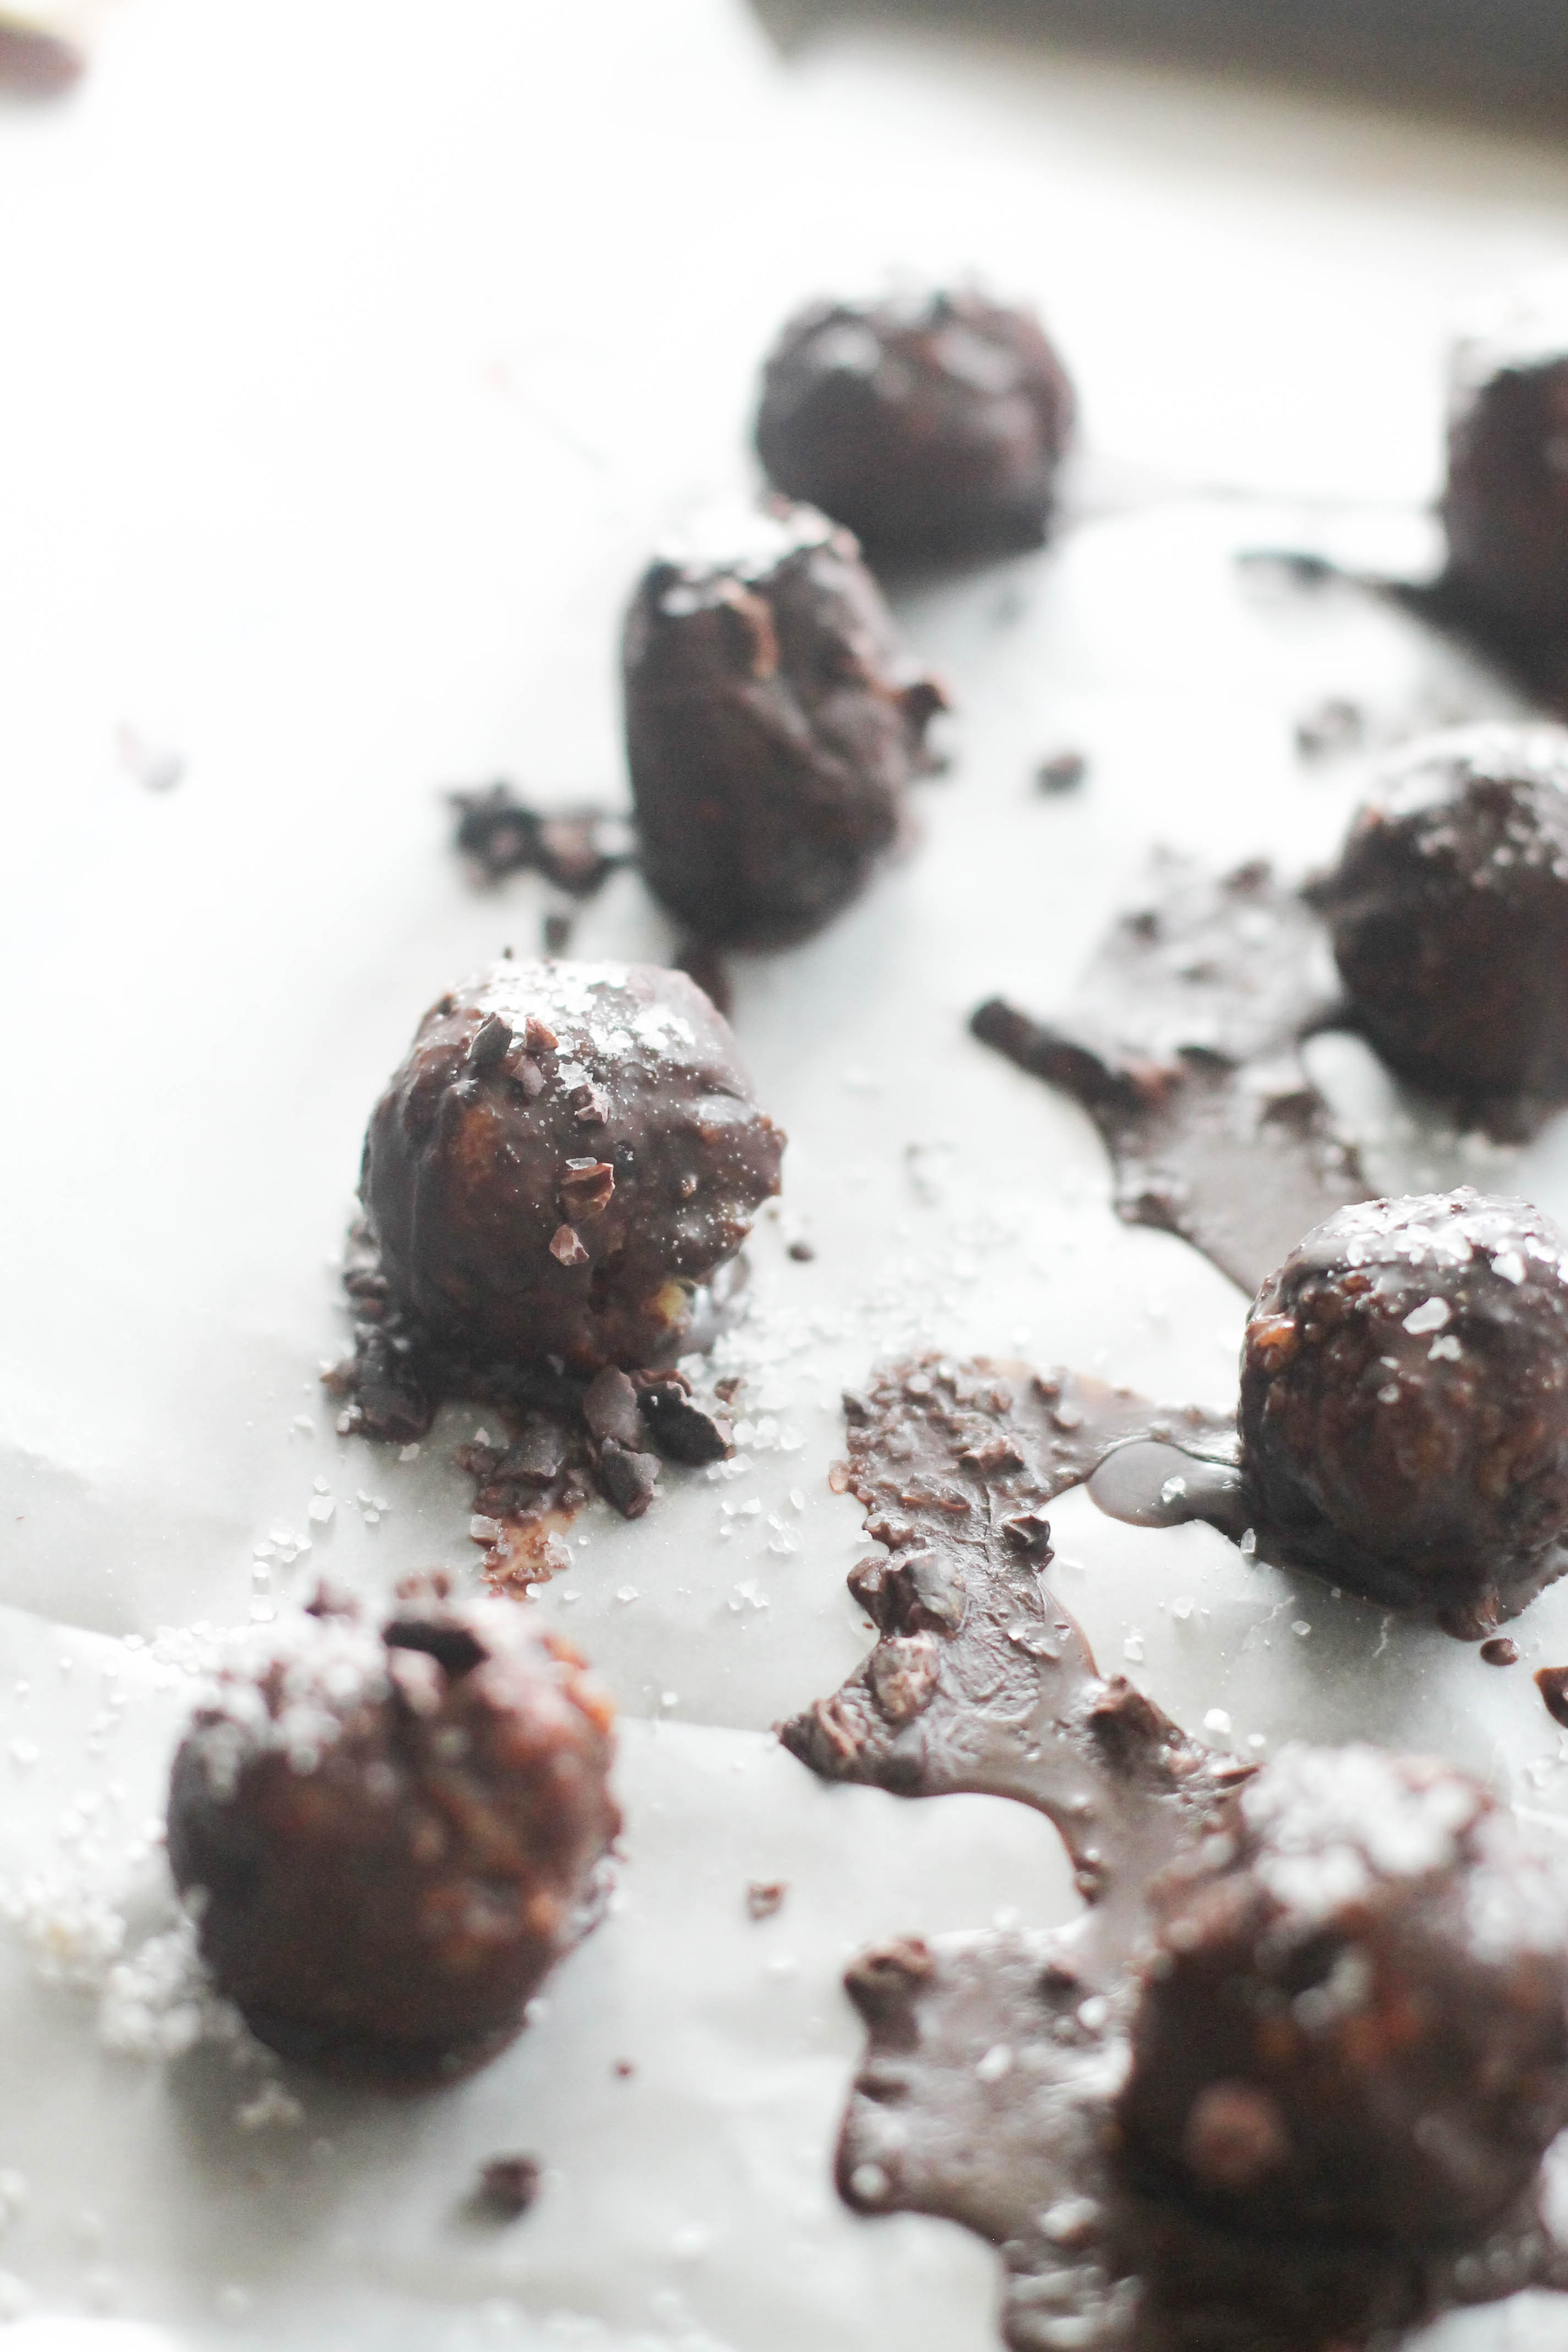 These dark chocolate sea salt truffles are the perfect healthy dessert. They're filled with healthy fats, natural sweetness, tons of flavor, and chocolate goodness. Plus, they're vegan, gluten free, and no bake!